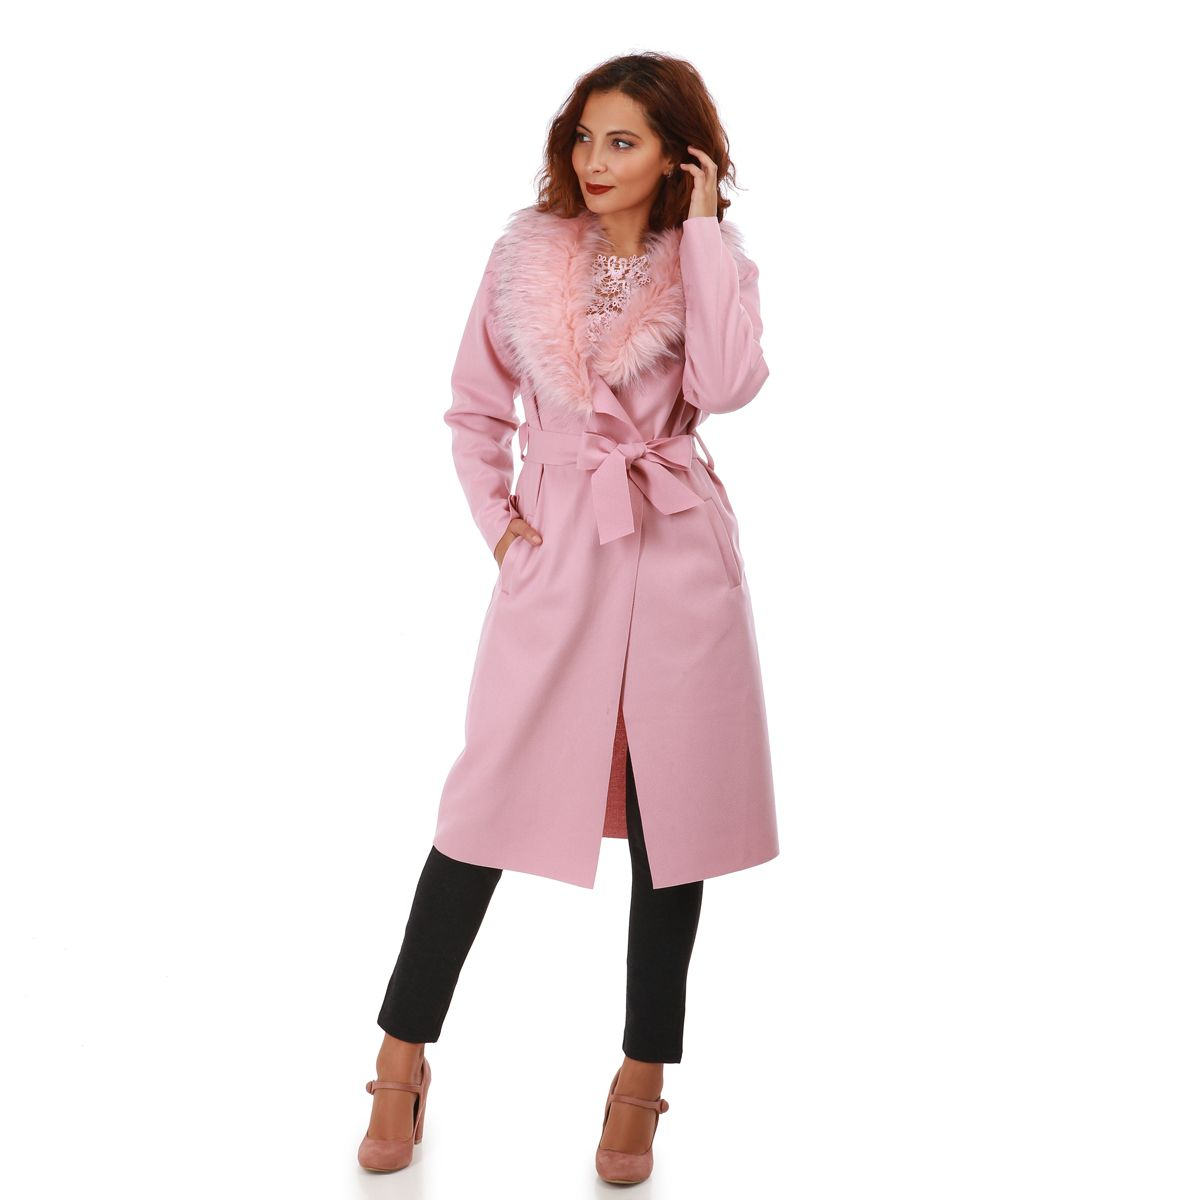 manteau long rose avec col en fausse fourrure pas cher la modeuse. Black Bedroom Furniture Sets. Home Design Ideas